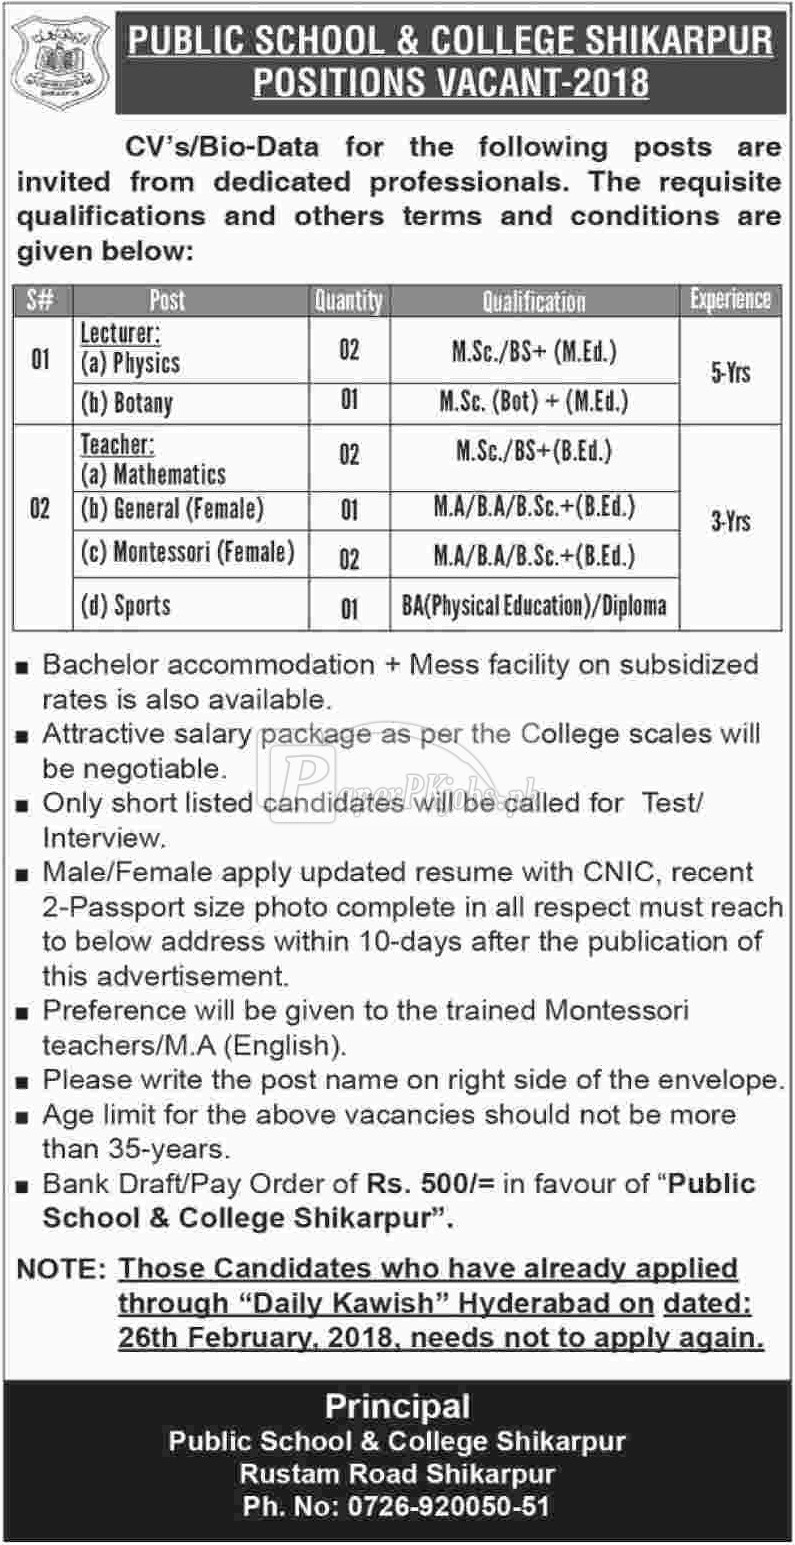 Public School & College Shikarpur Jobs 2018